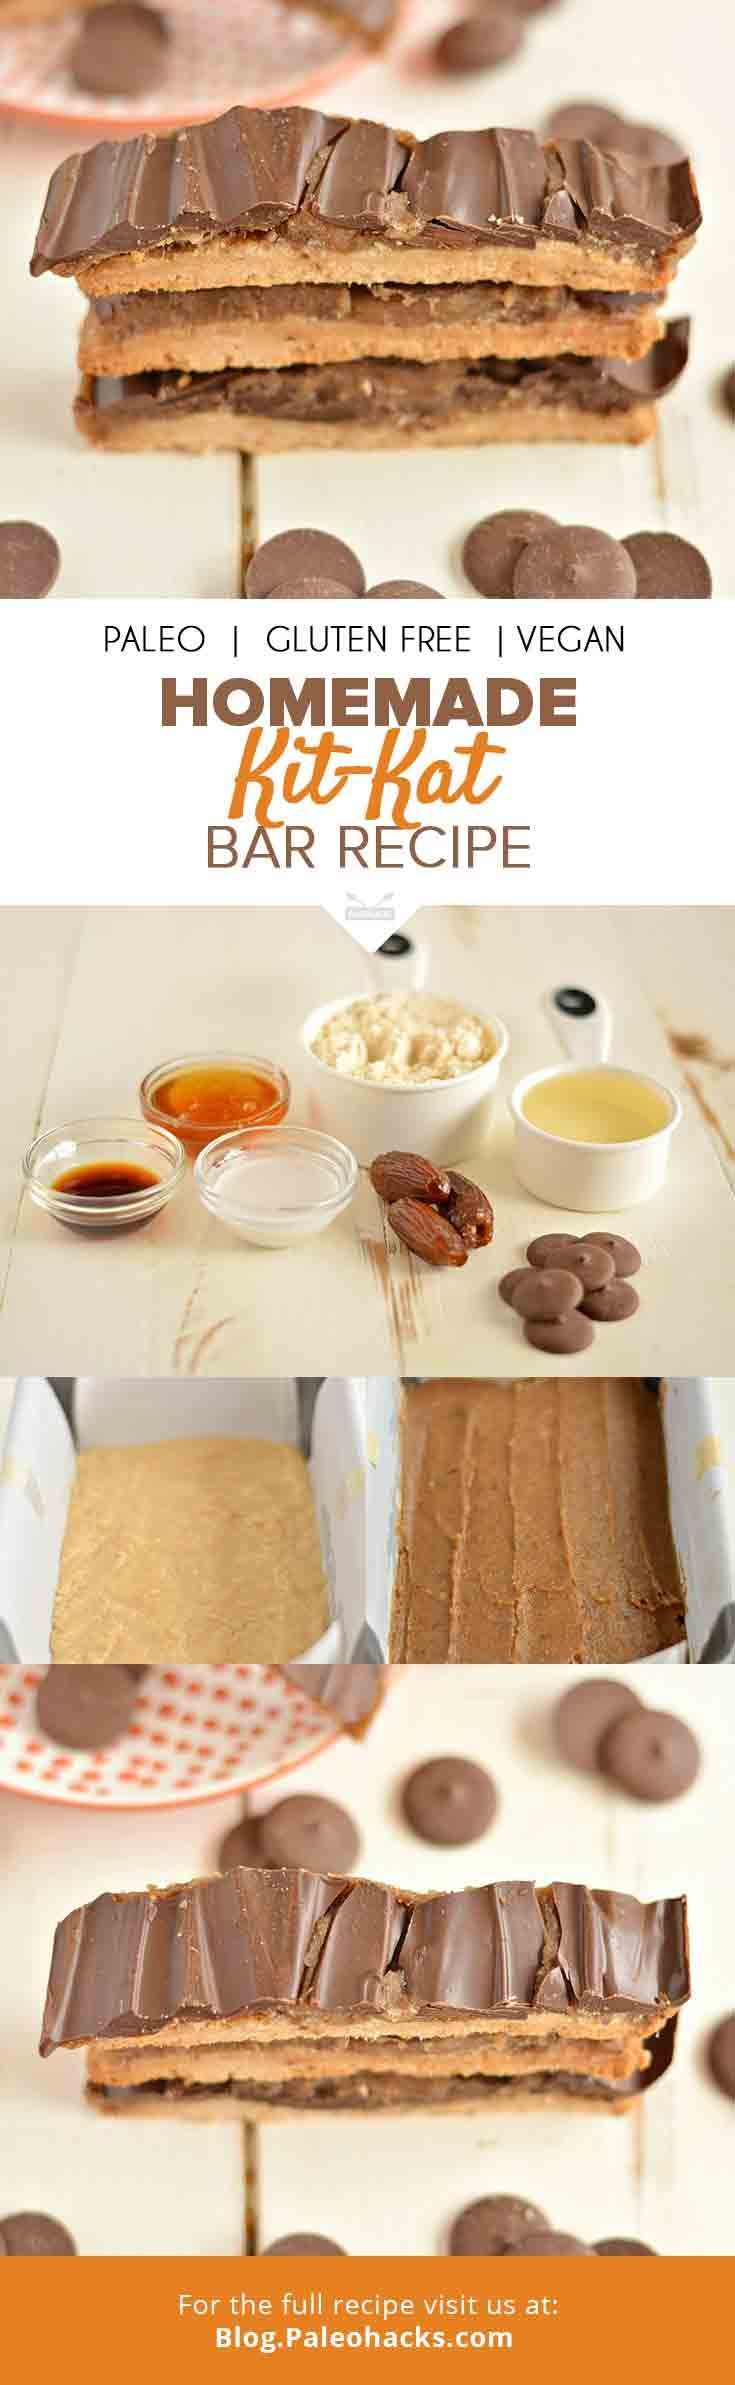 "gluten-free grain-free paleo dessert recipe (""kit kat"") Maybe use as a Christmas time goodie"